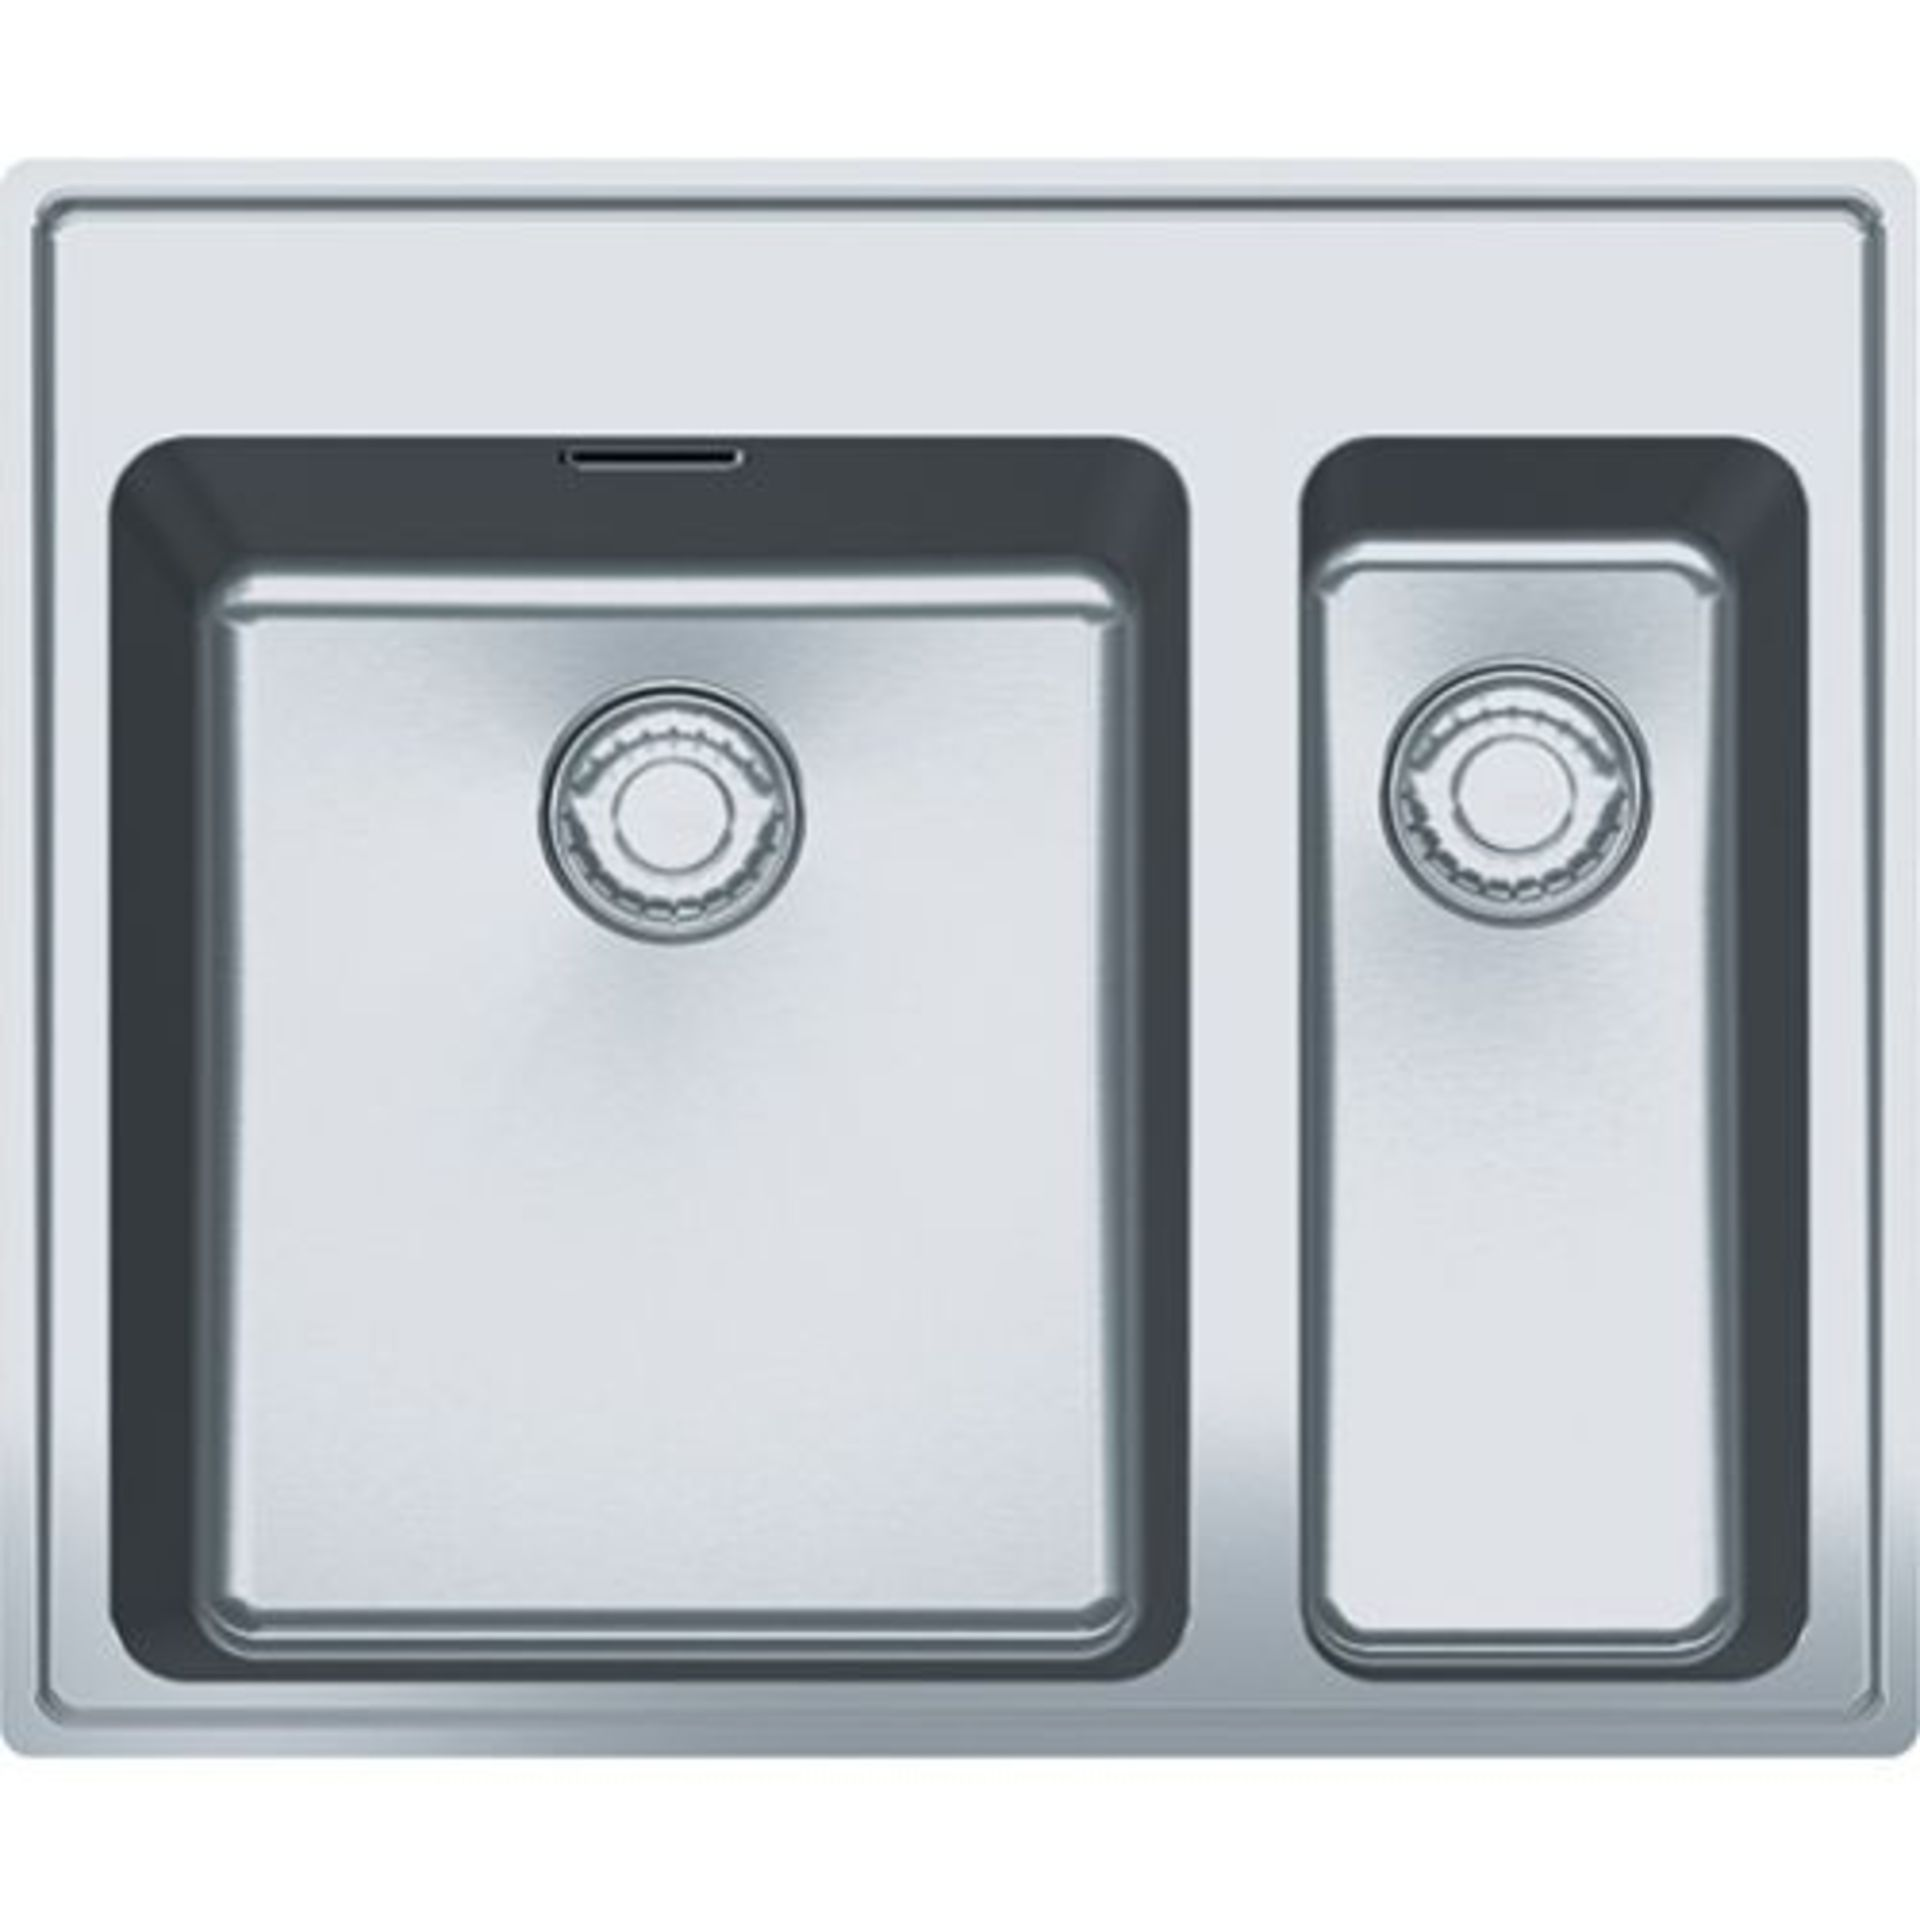 Boxed Brand New Factory Sealed Franke Sink- Model- MTX 660-34-16 600x510mm, RRP-£550.00